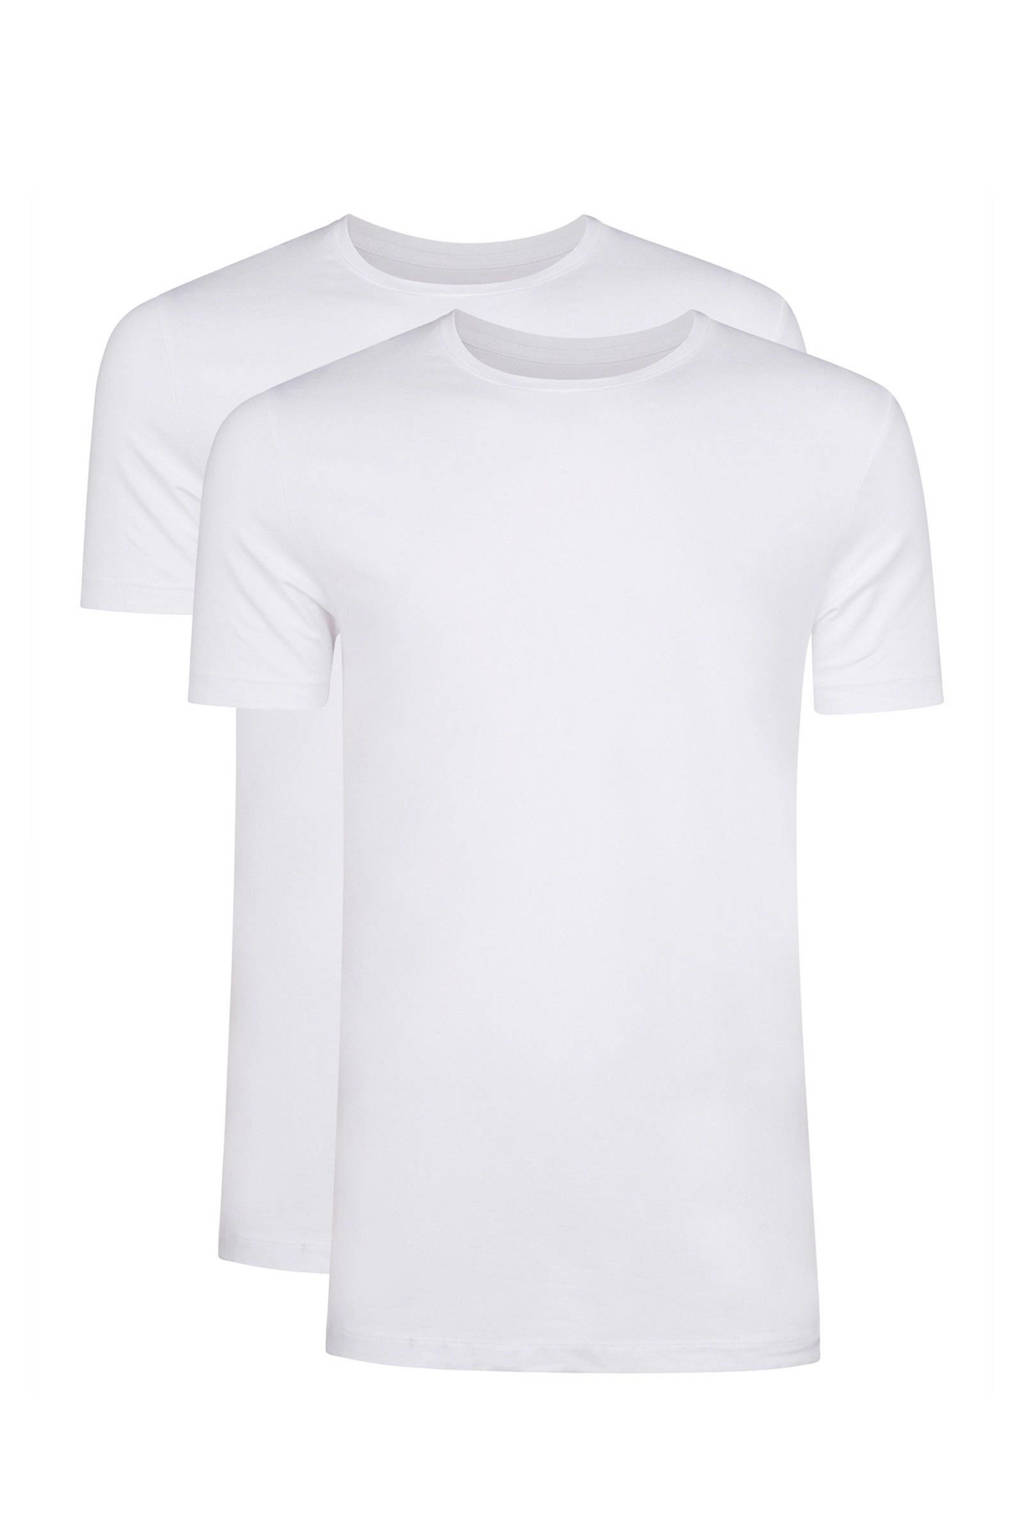 WE Fashion Fundamental T-shirt - set van 2, White Uni